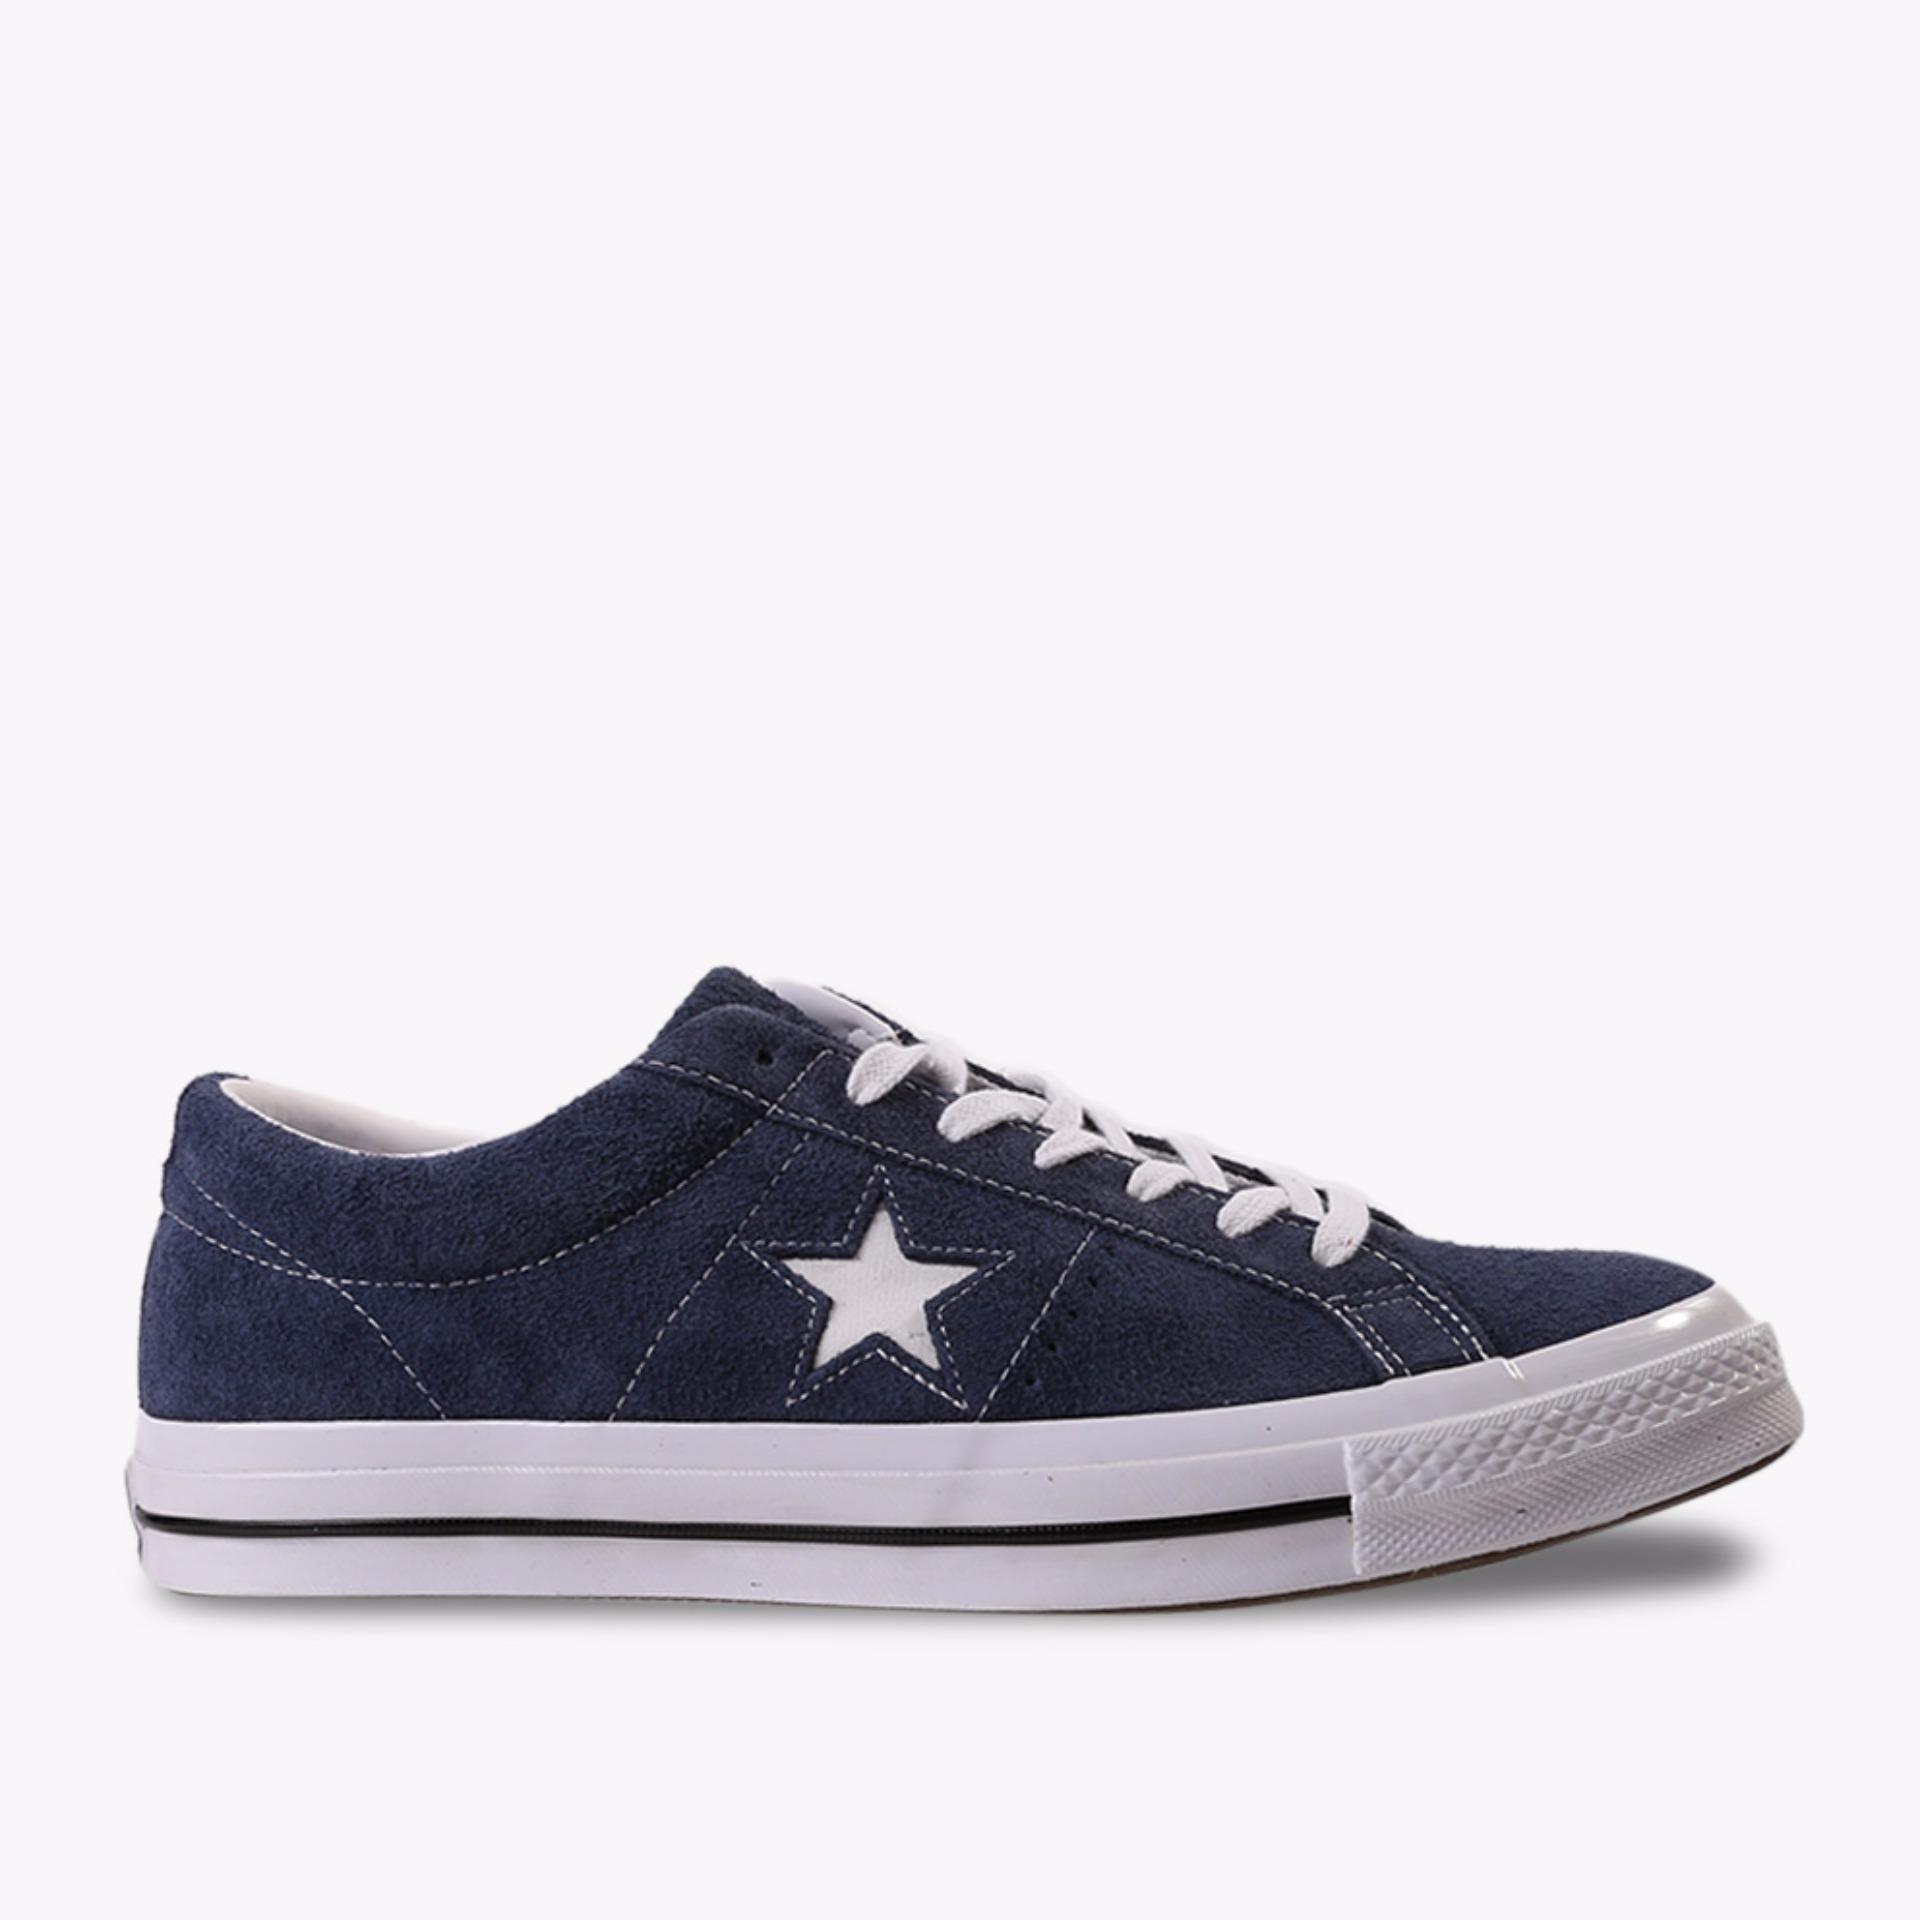 Converse One Star Premium Suede Low Men's Sneakers Shoes - Biru Tua